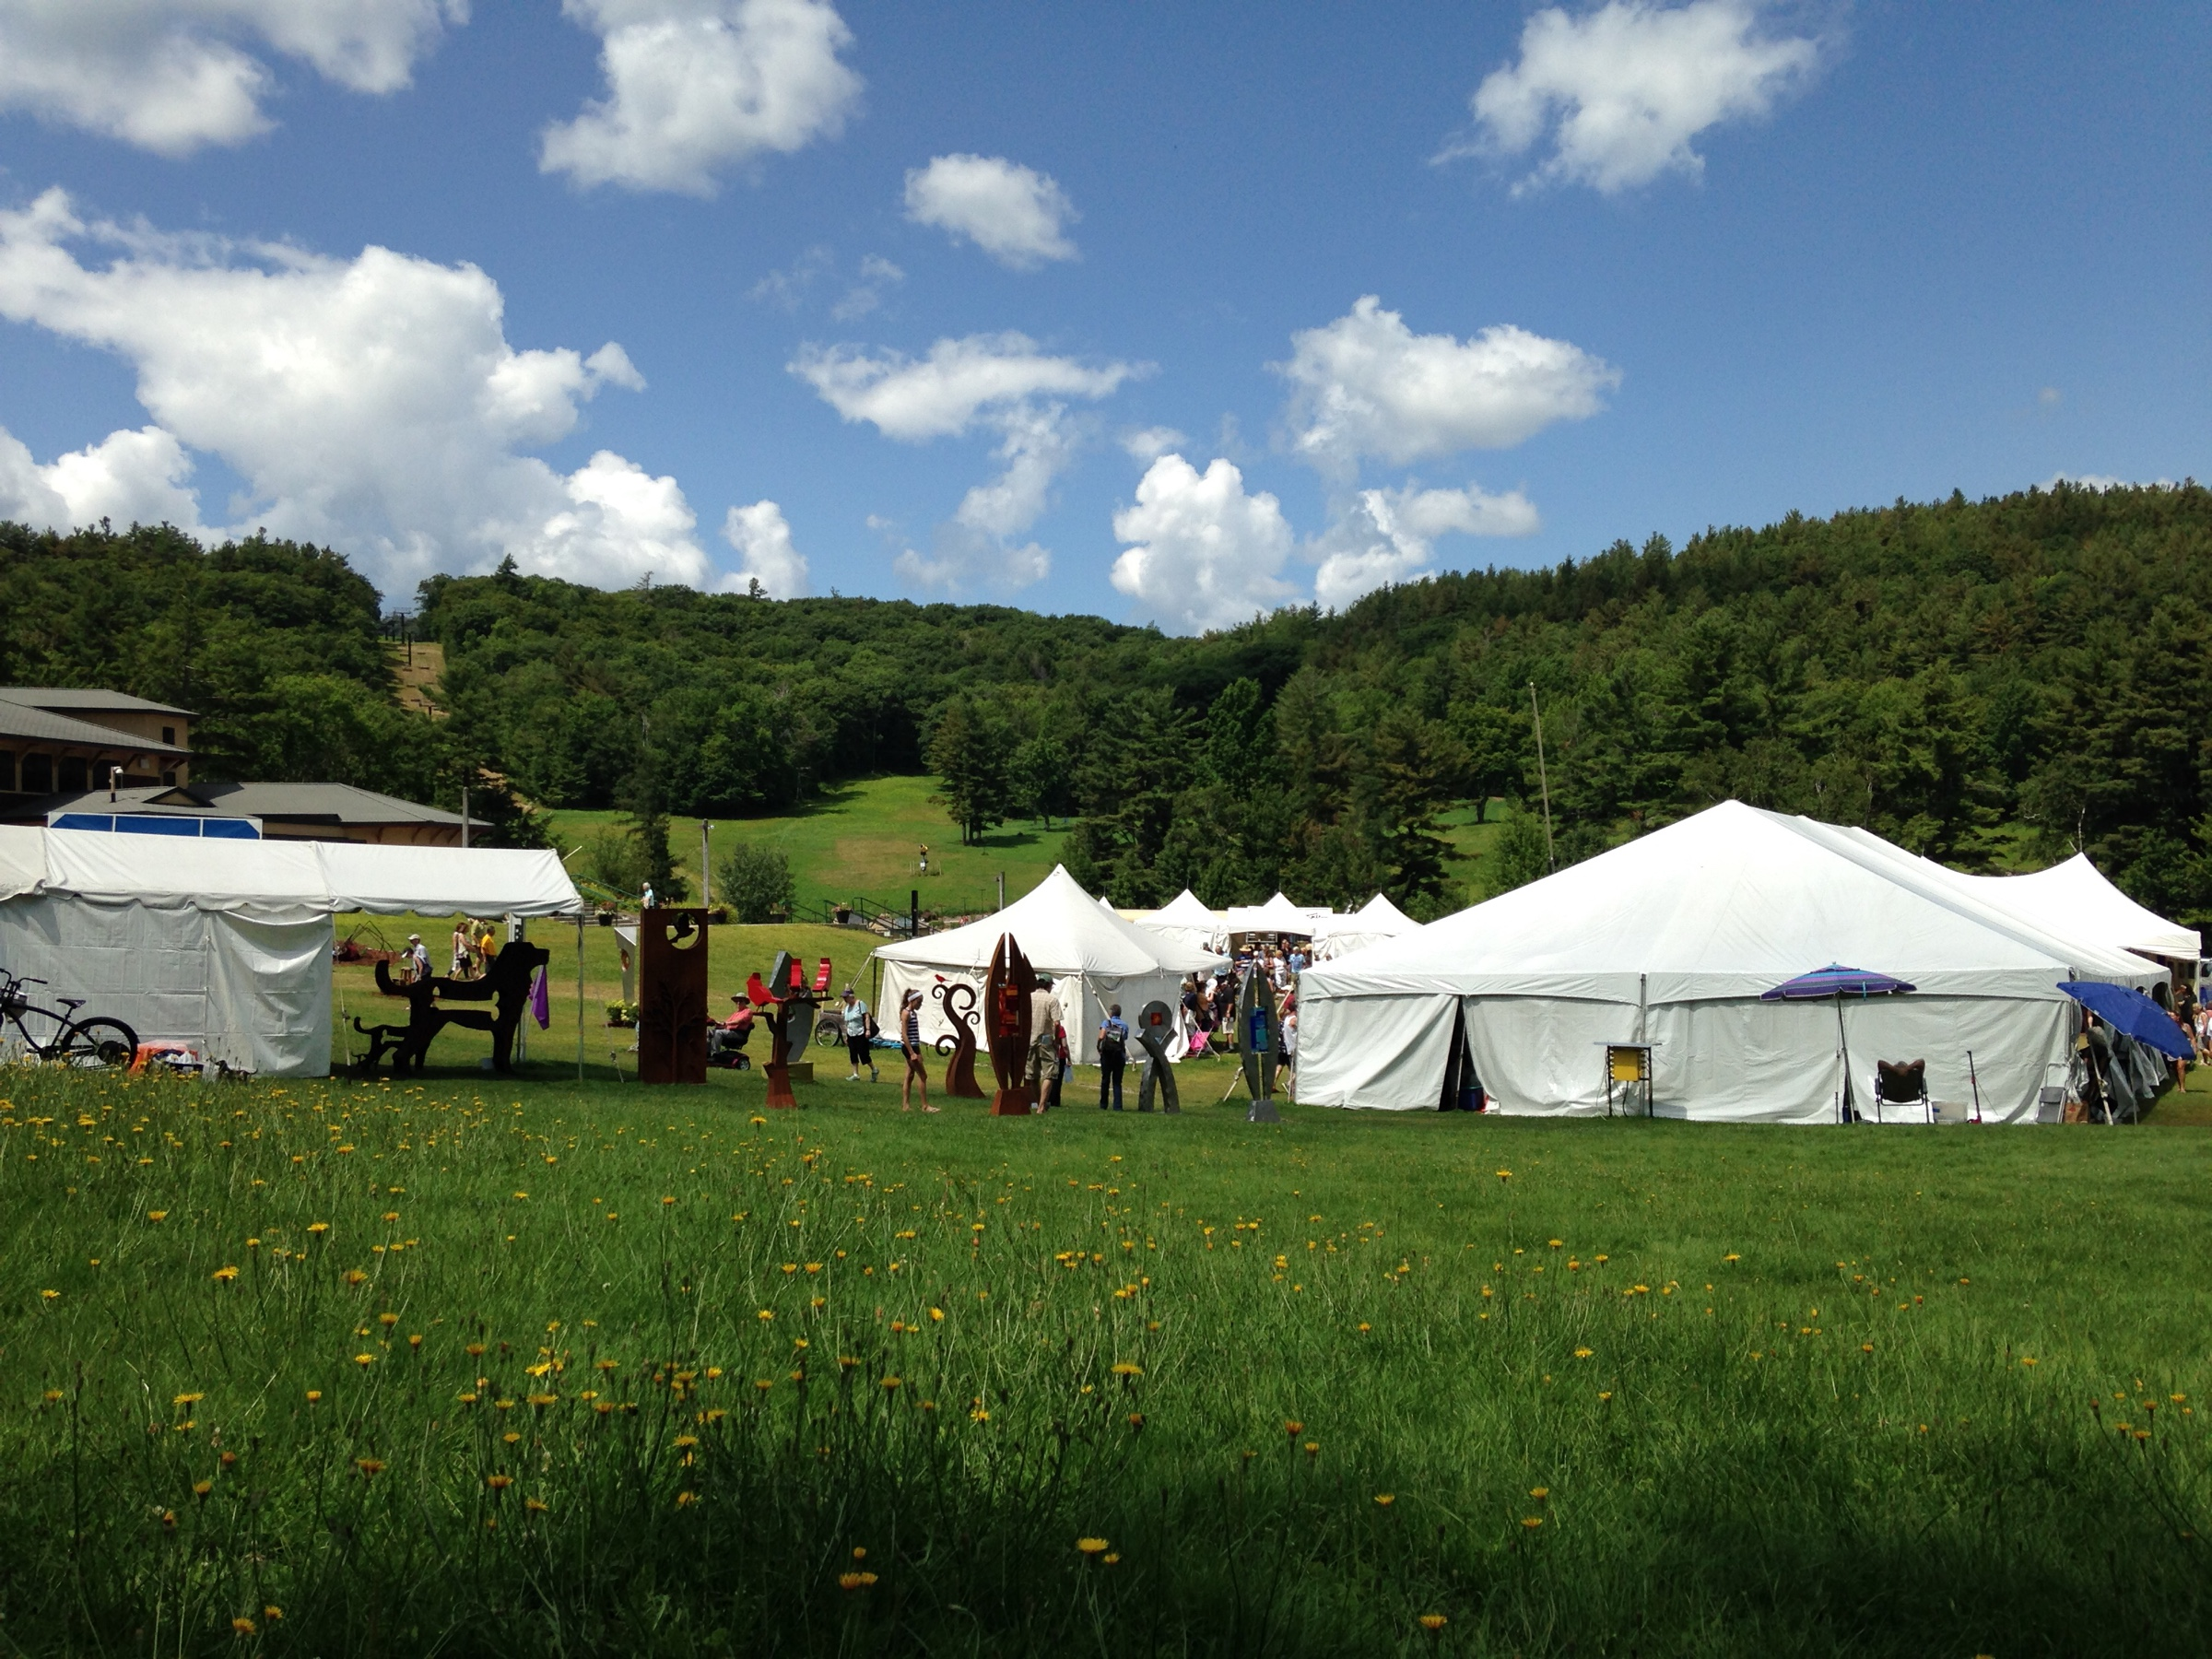 sunapee-crafts-fair-august-2014_17057477850_o